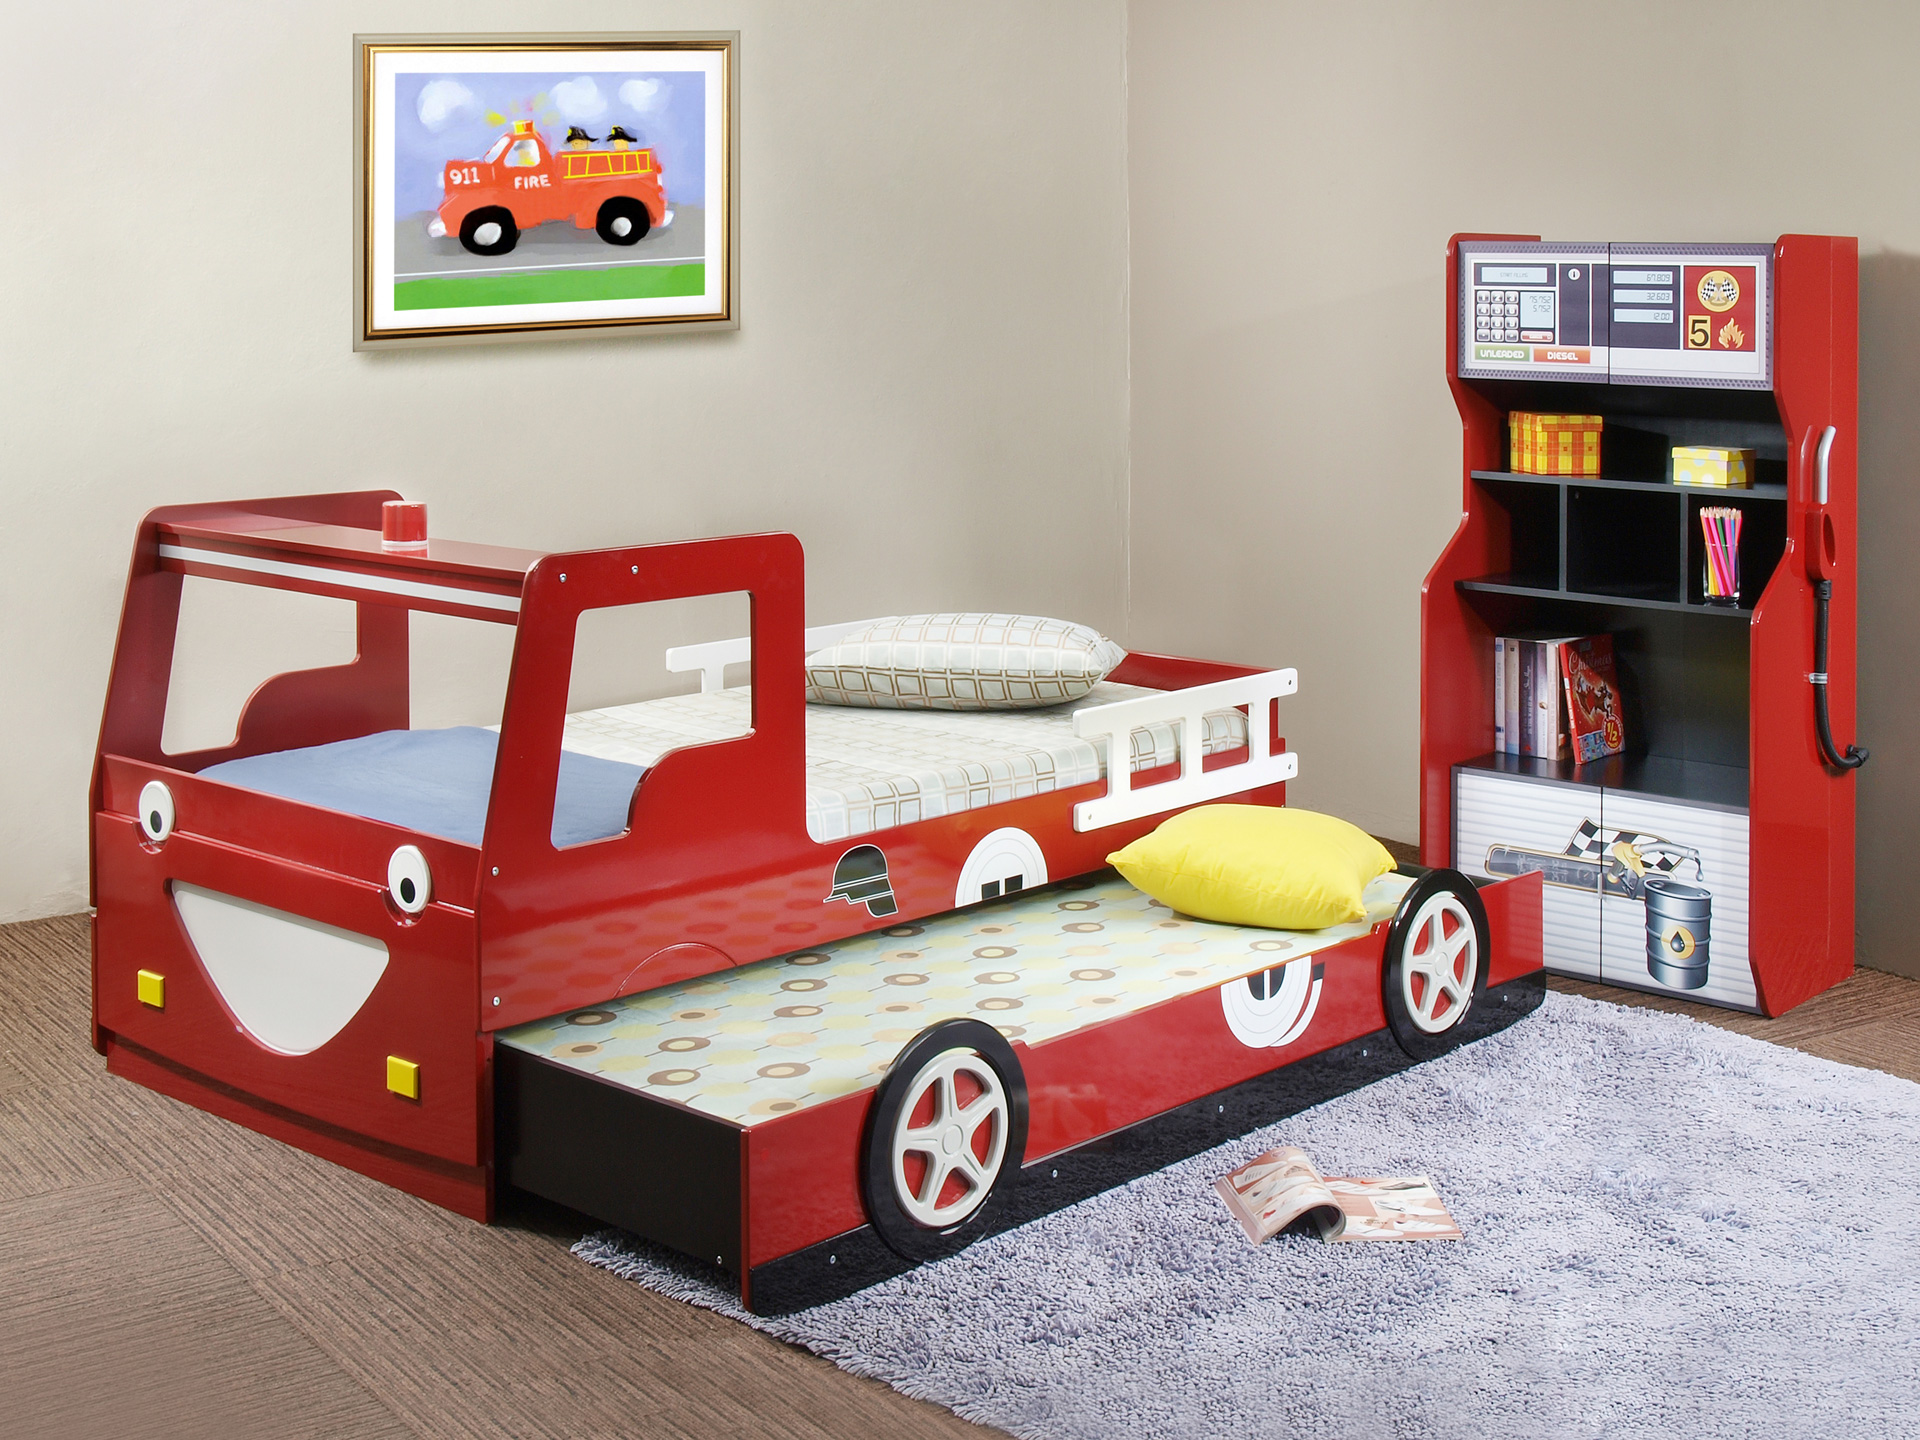 Trundle Beds For Children With Red Car Shape Of Bed And Fur Purple Rug